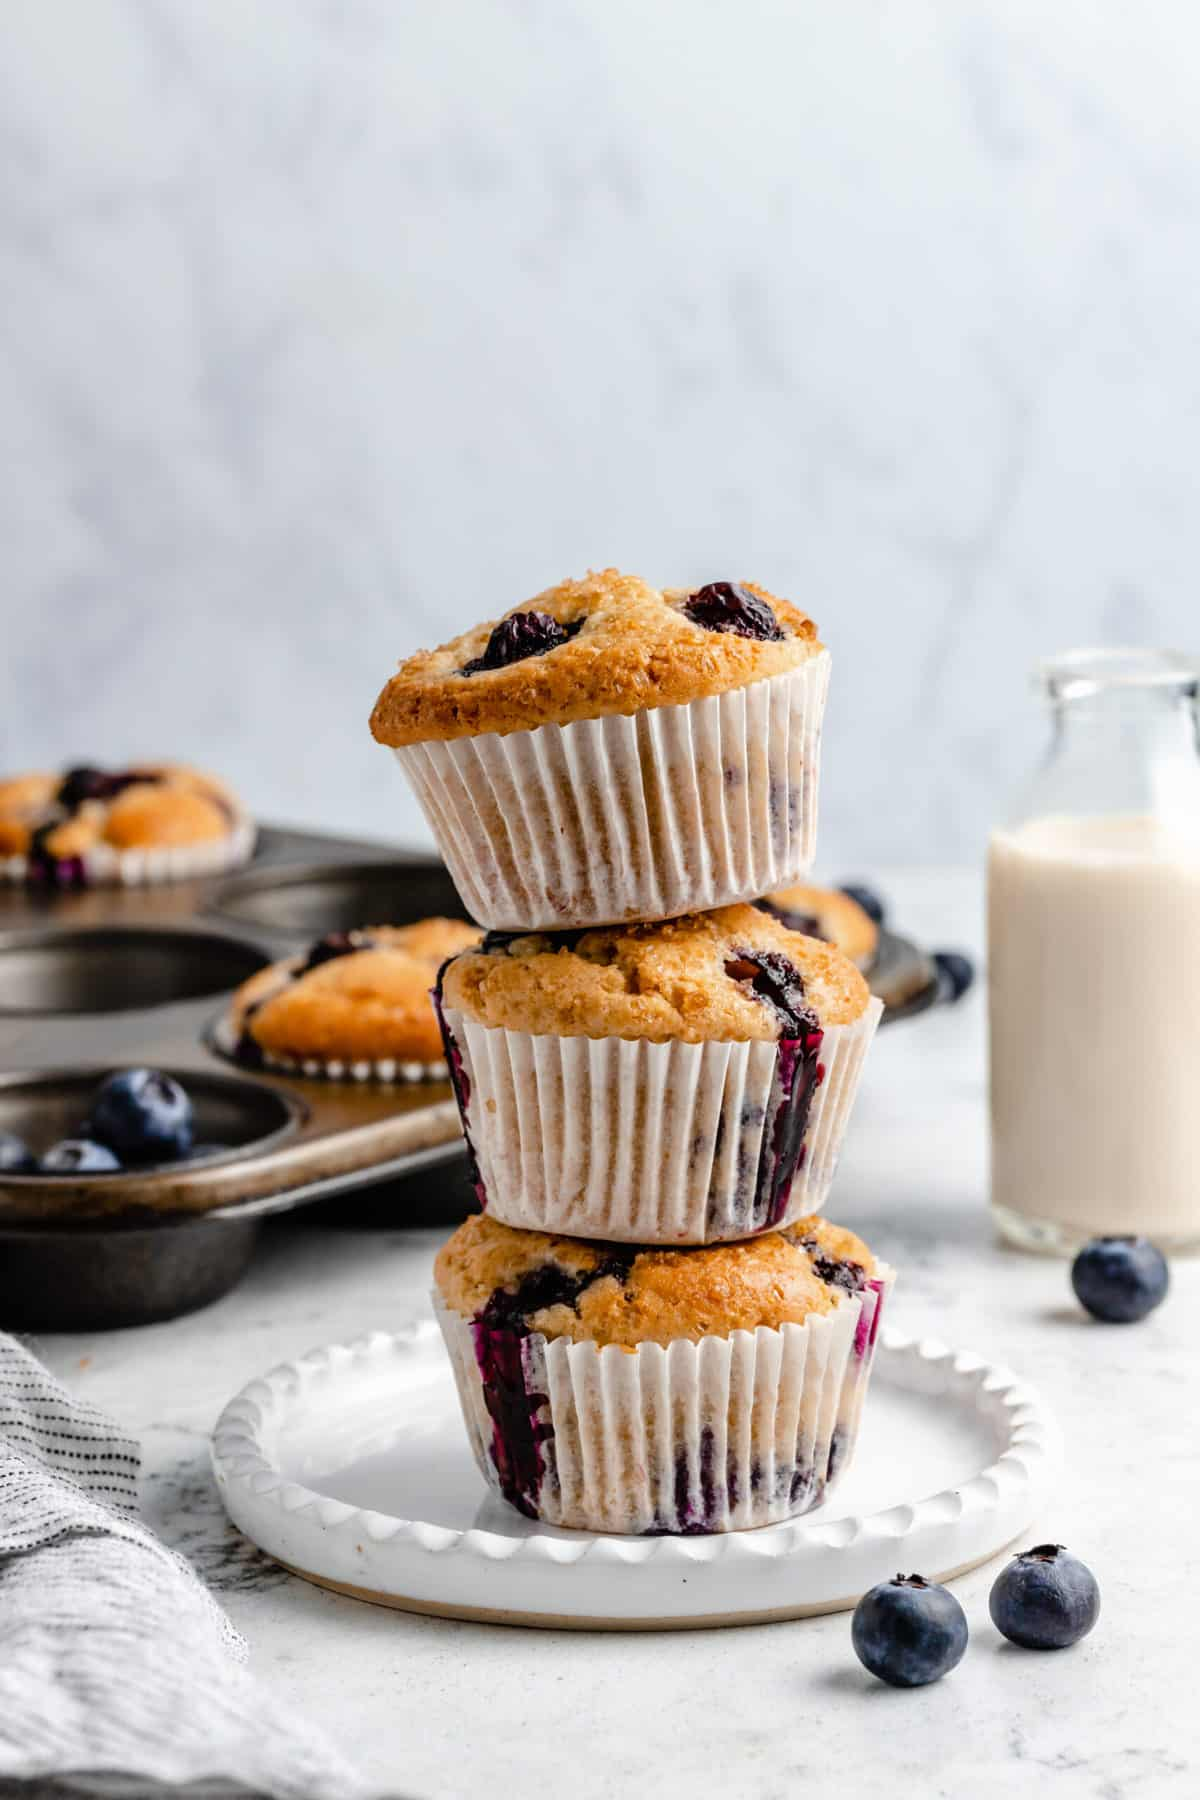 Three stacked blueberry muffins on a plate.